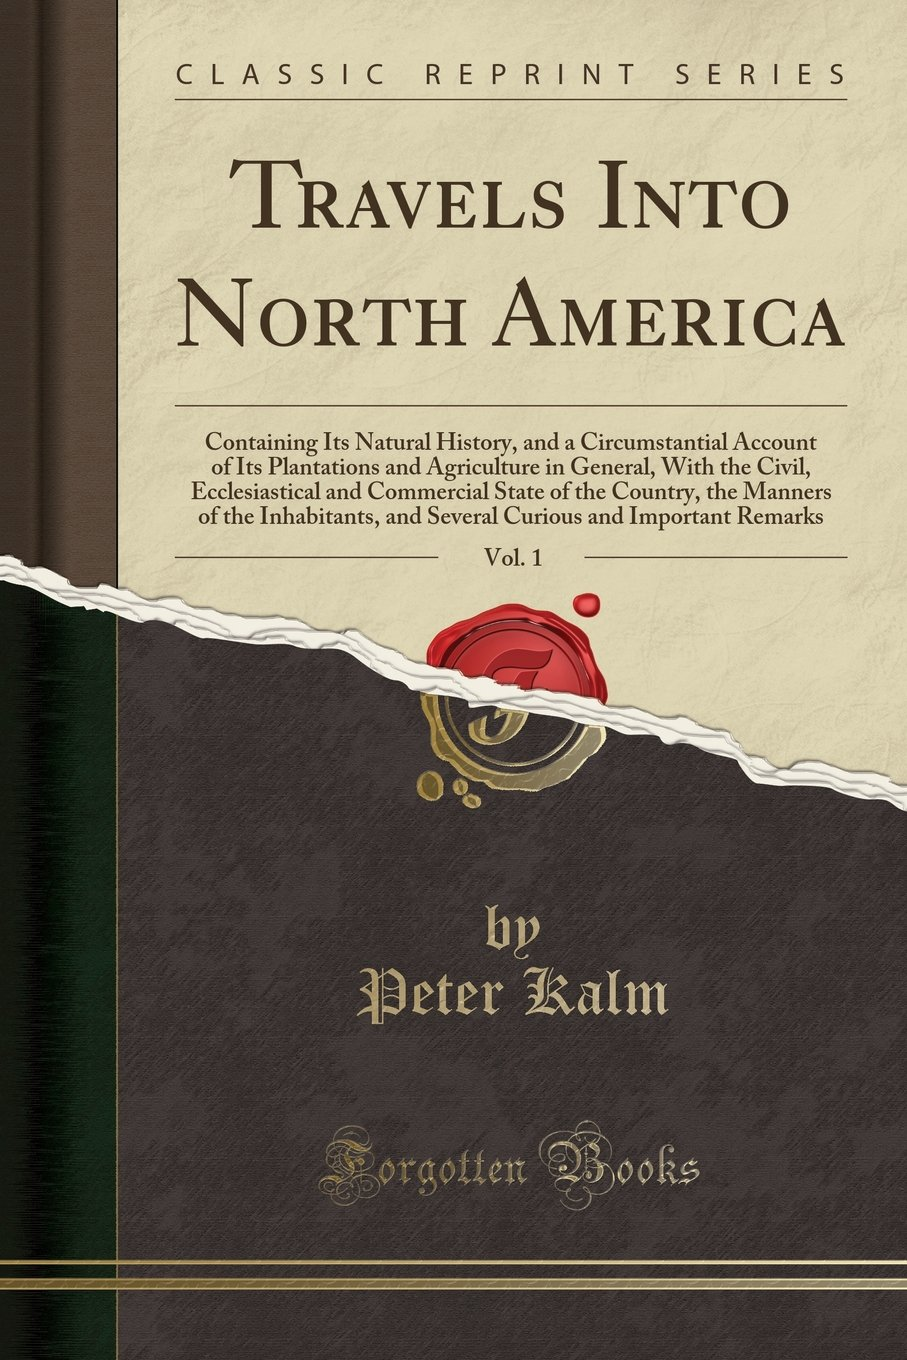 Travels Into North America, Vol. 1: Containing Its Natural History, and a Circumstantial Account of Its Plantations and Agriculture in General, With the Manners of the Inhabitants, and Several